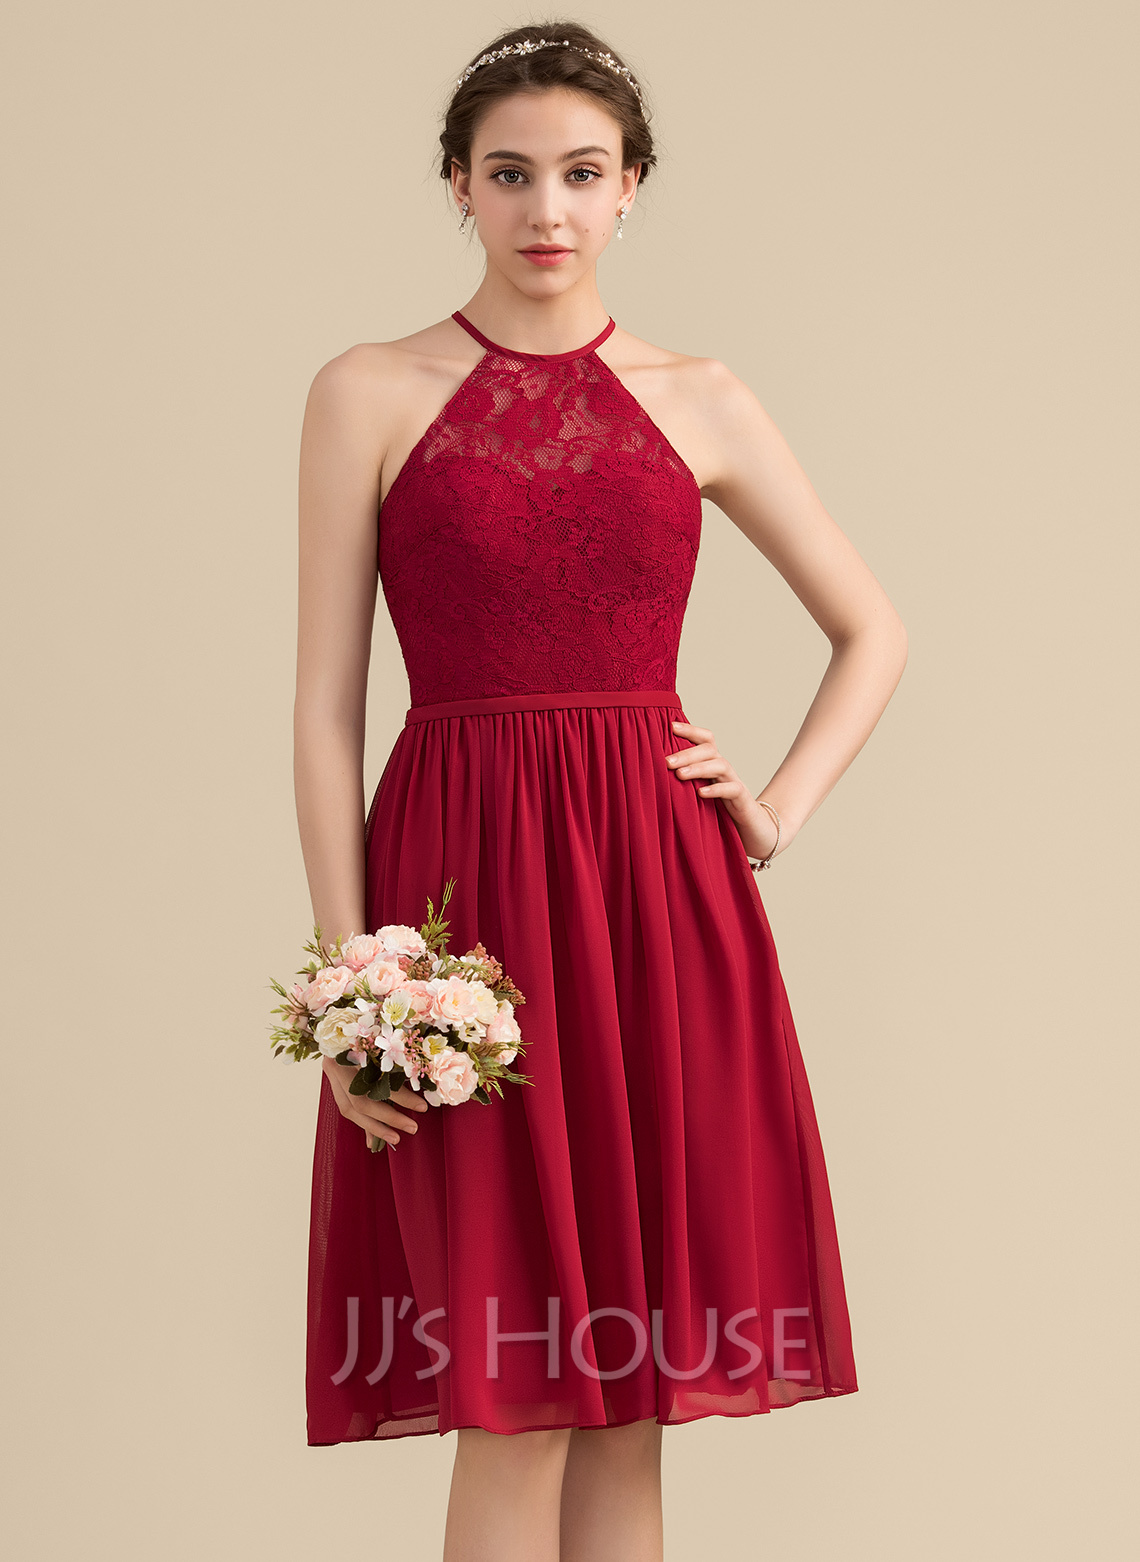 2de7af038f99a A-Line/Princess Scoop Neck Knee-Length Chiffon Lace Bridesmaid Dress.  Loading zoom